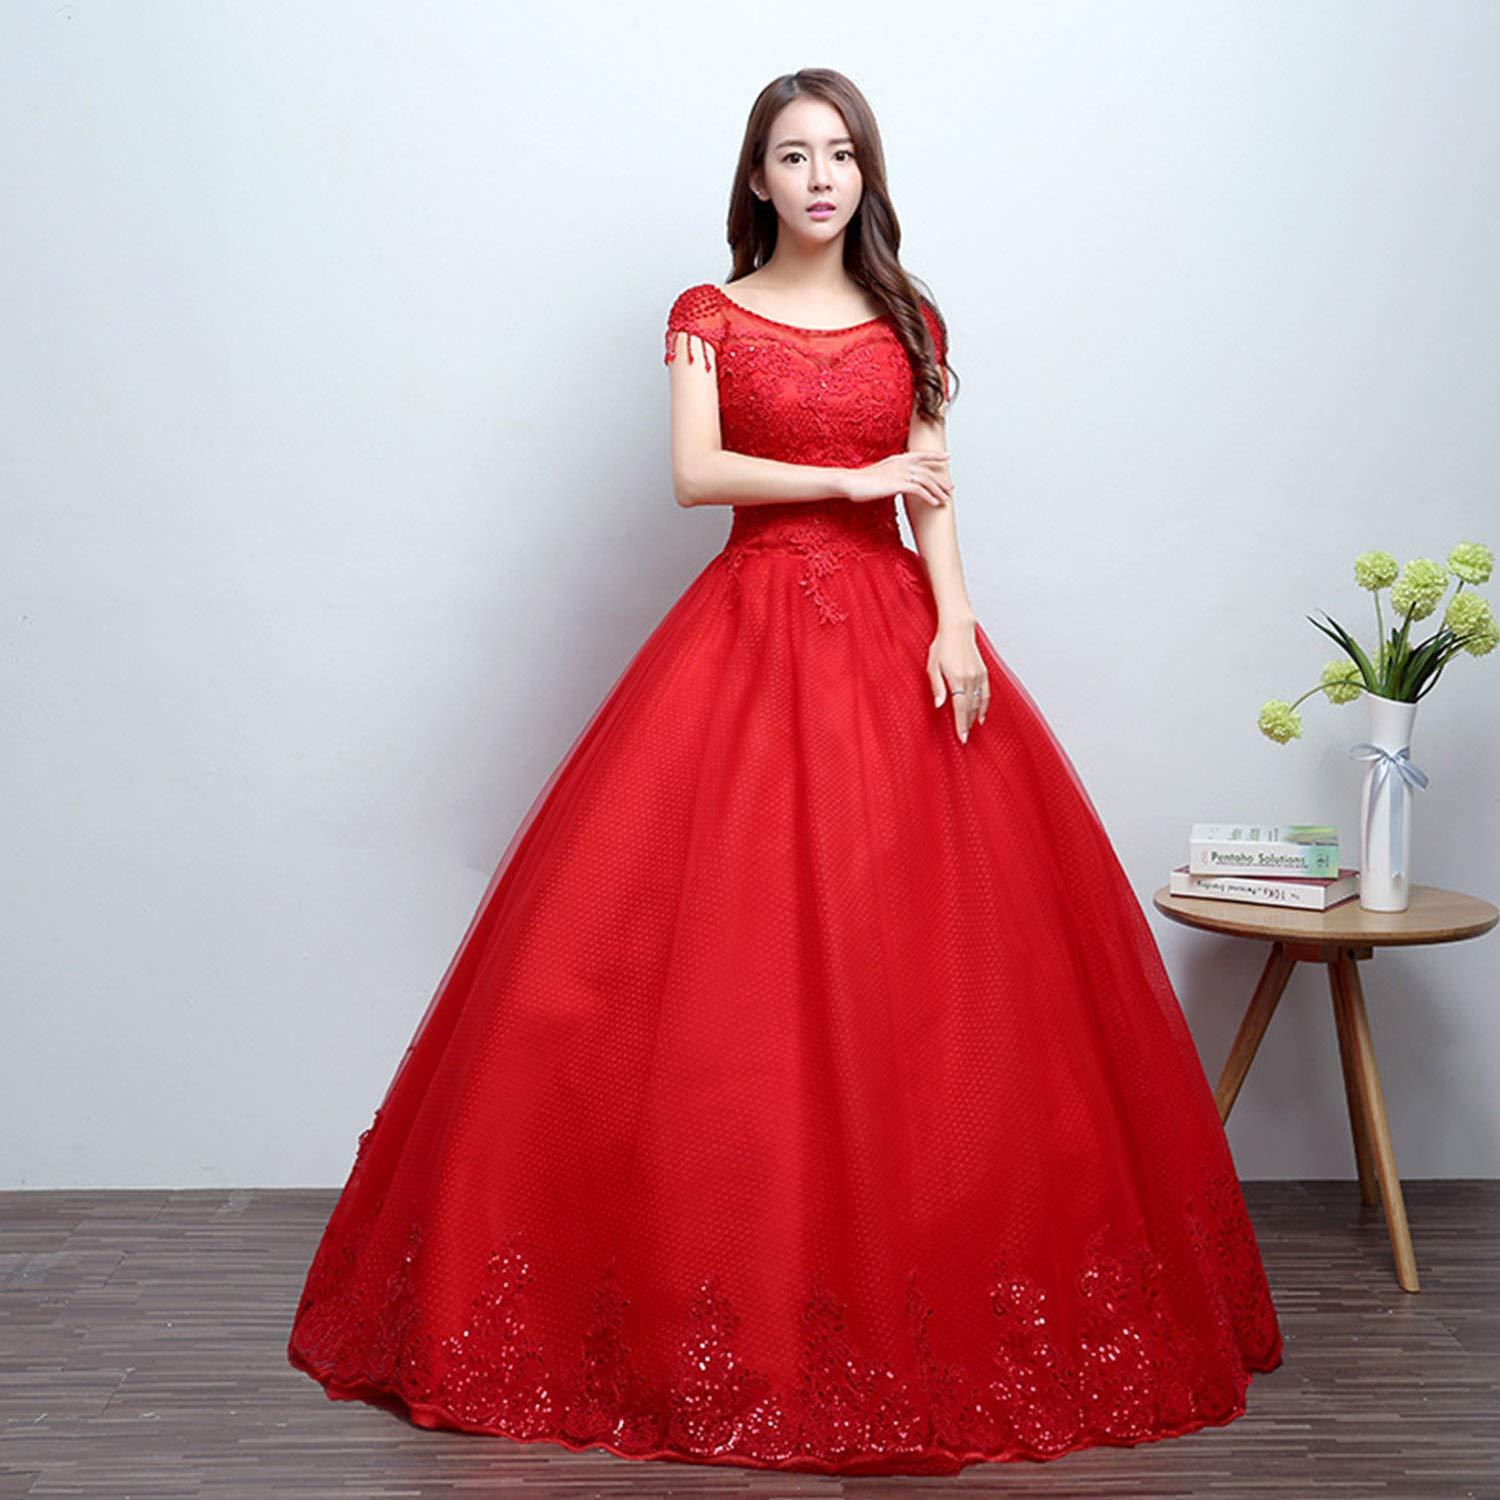 Sweetheart Fluffy Wedding Dresses for Bride Red Fashion Floor Length Dresses for Women Ladies Ceremony Party Special Event Use,Gift